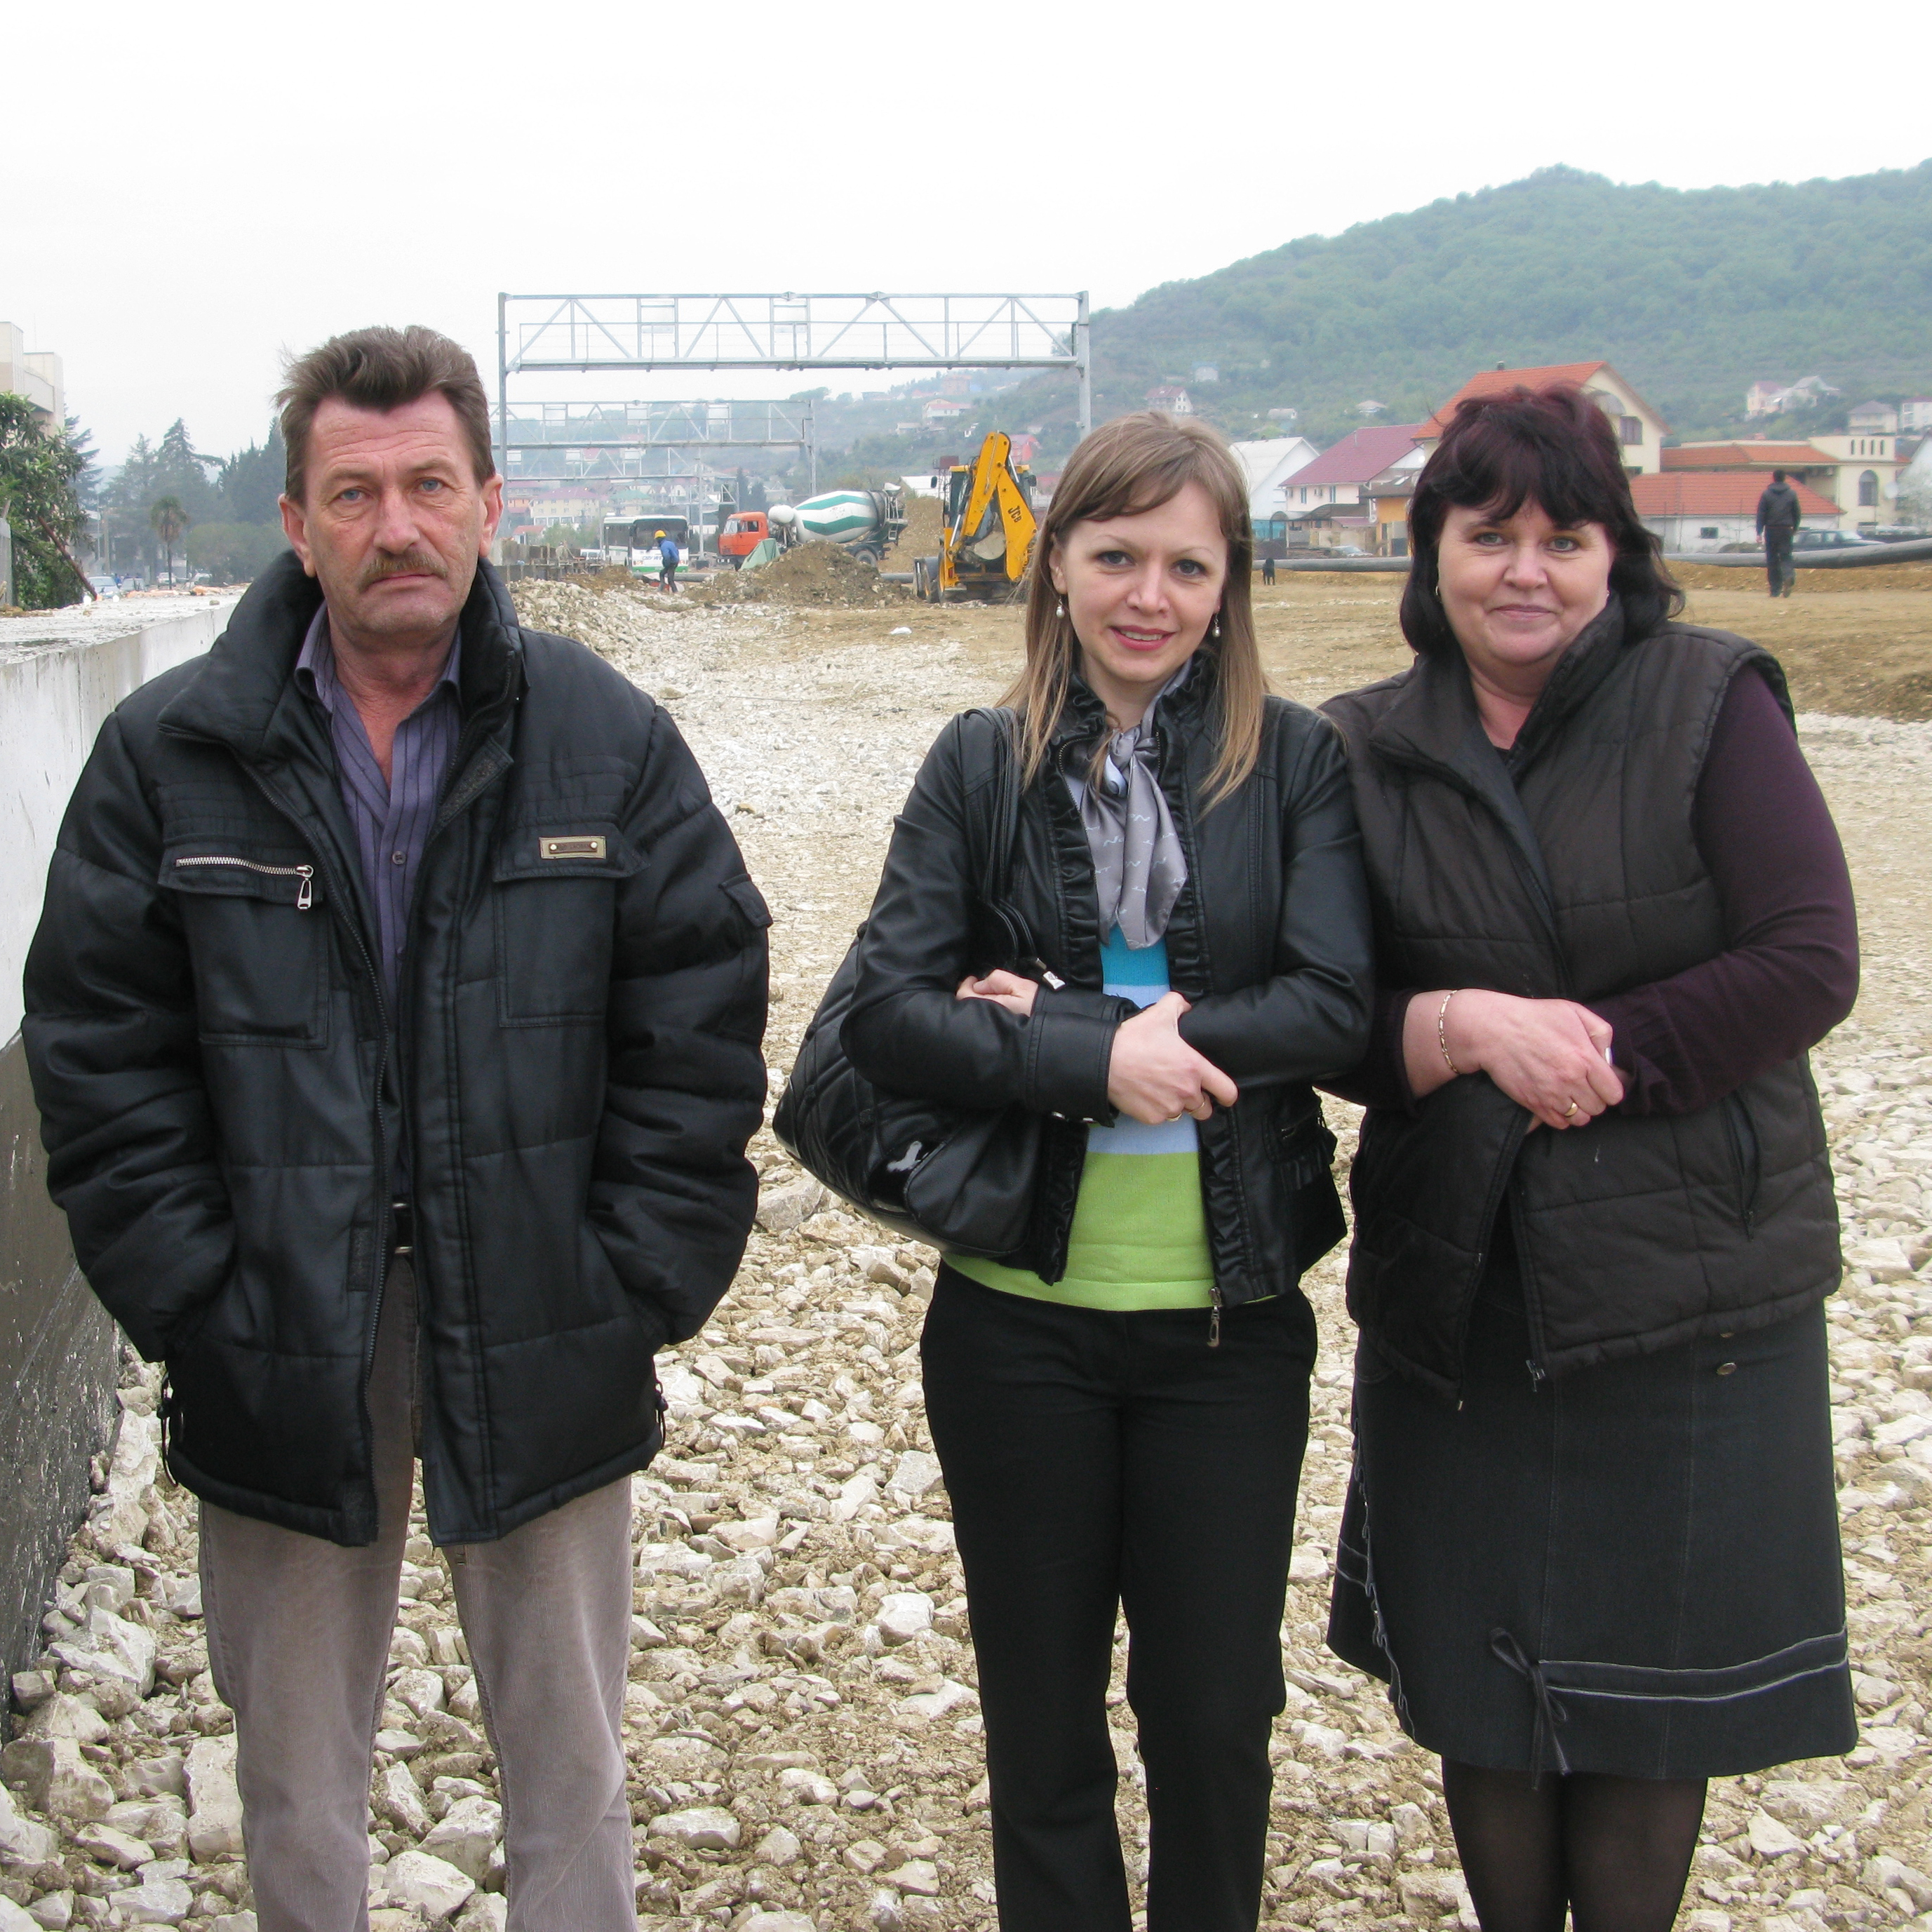 Yulia Saltykova (center) stands with her family on the site of a highway that, when finished, will cut off all access to their home. The family is one of many that say they have been displaced or harmed by Sochi's Olympic construction.